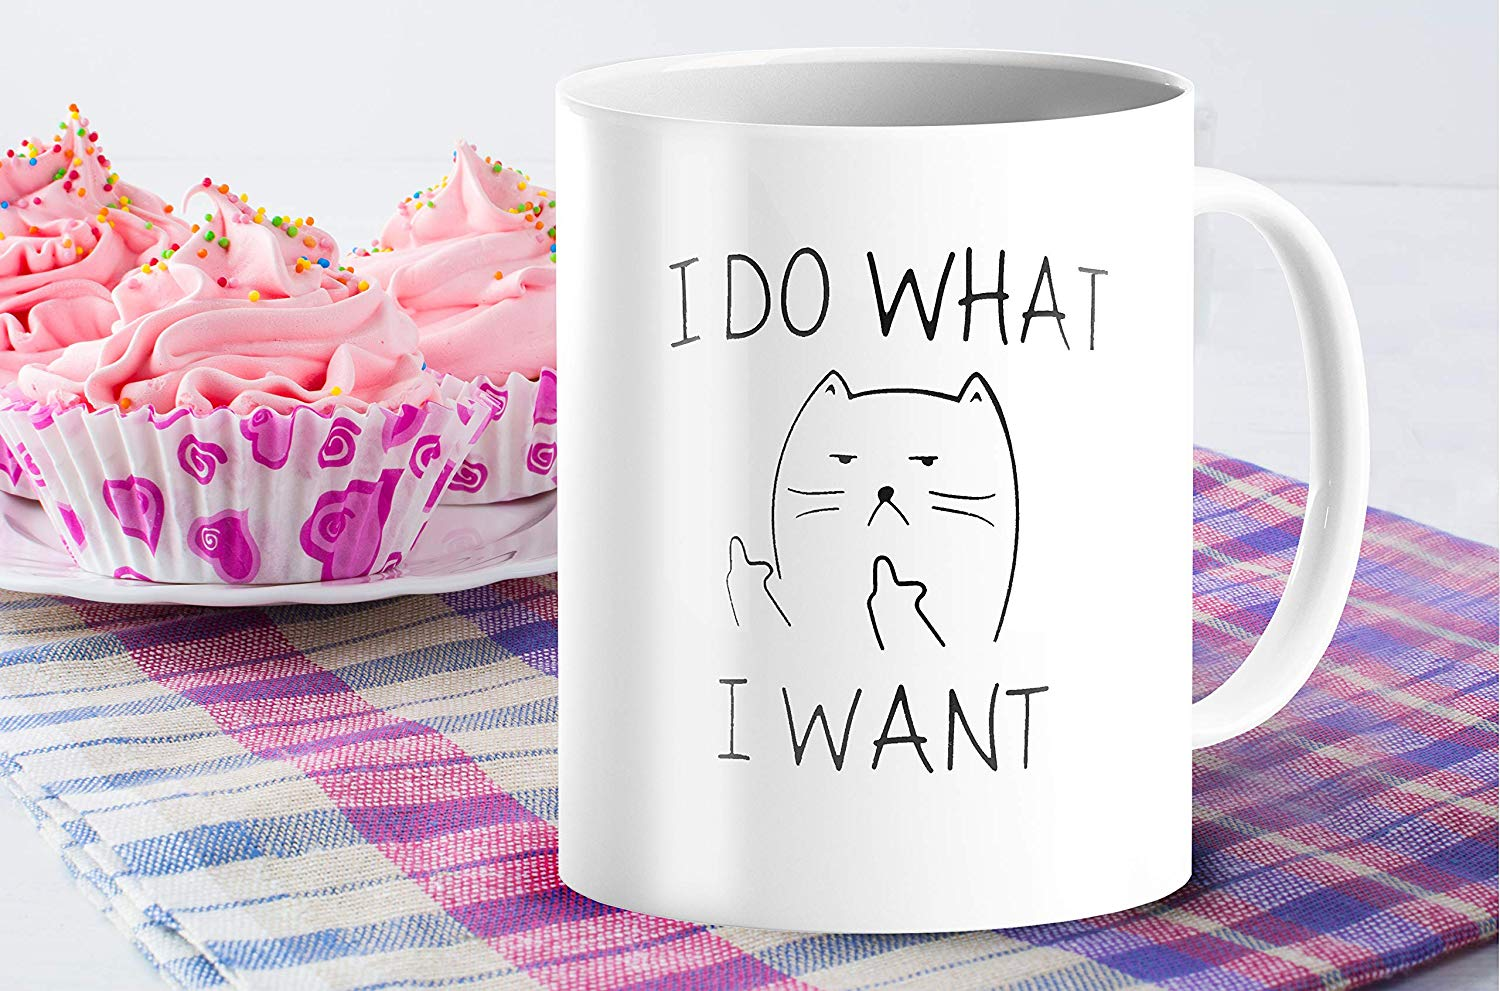 I Do What I Want Funny Coffee Mug Cat Middle Finger 11 Oz Birthday Gift For Men Women Him Or Her B079FX31TX 5